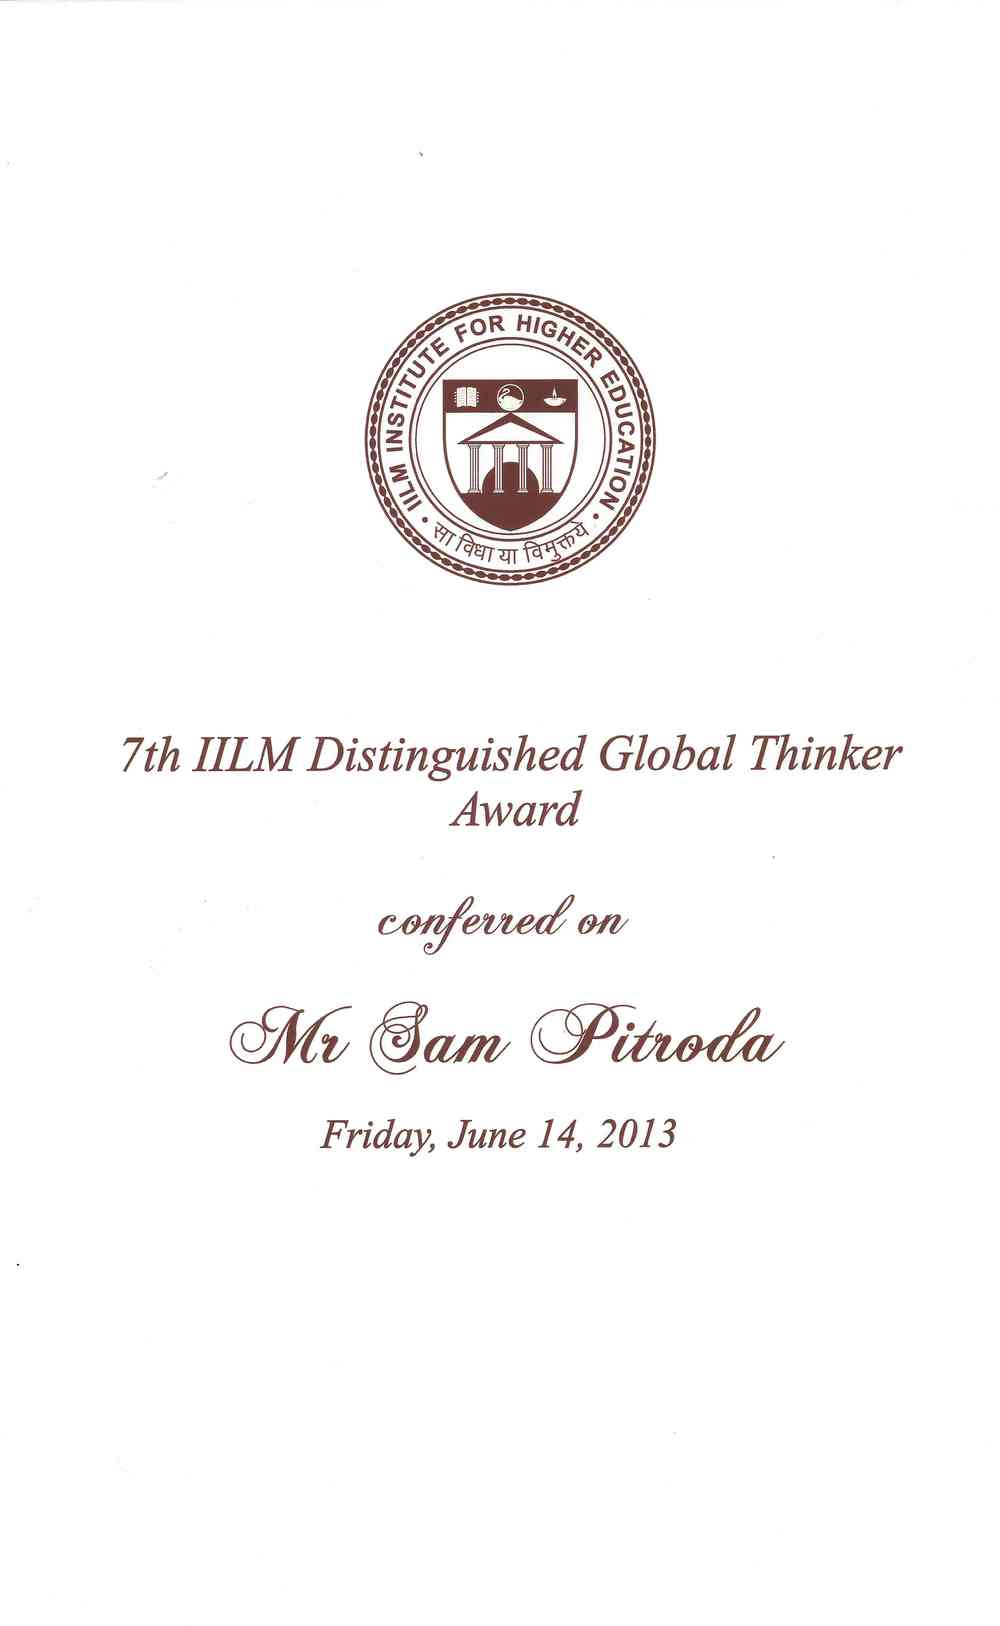 7th IILM Distinguished Global Thinker Award, IILM, 2013